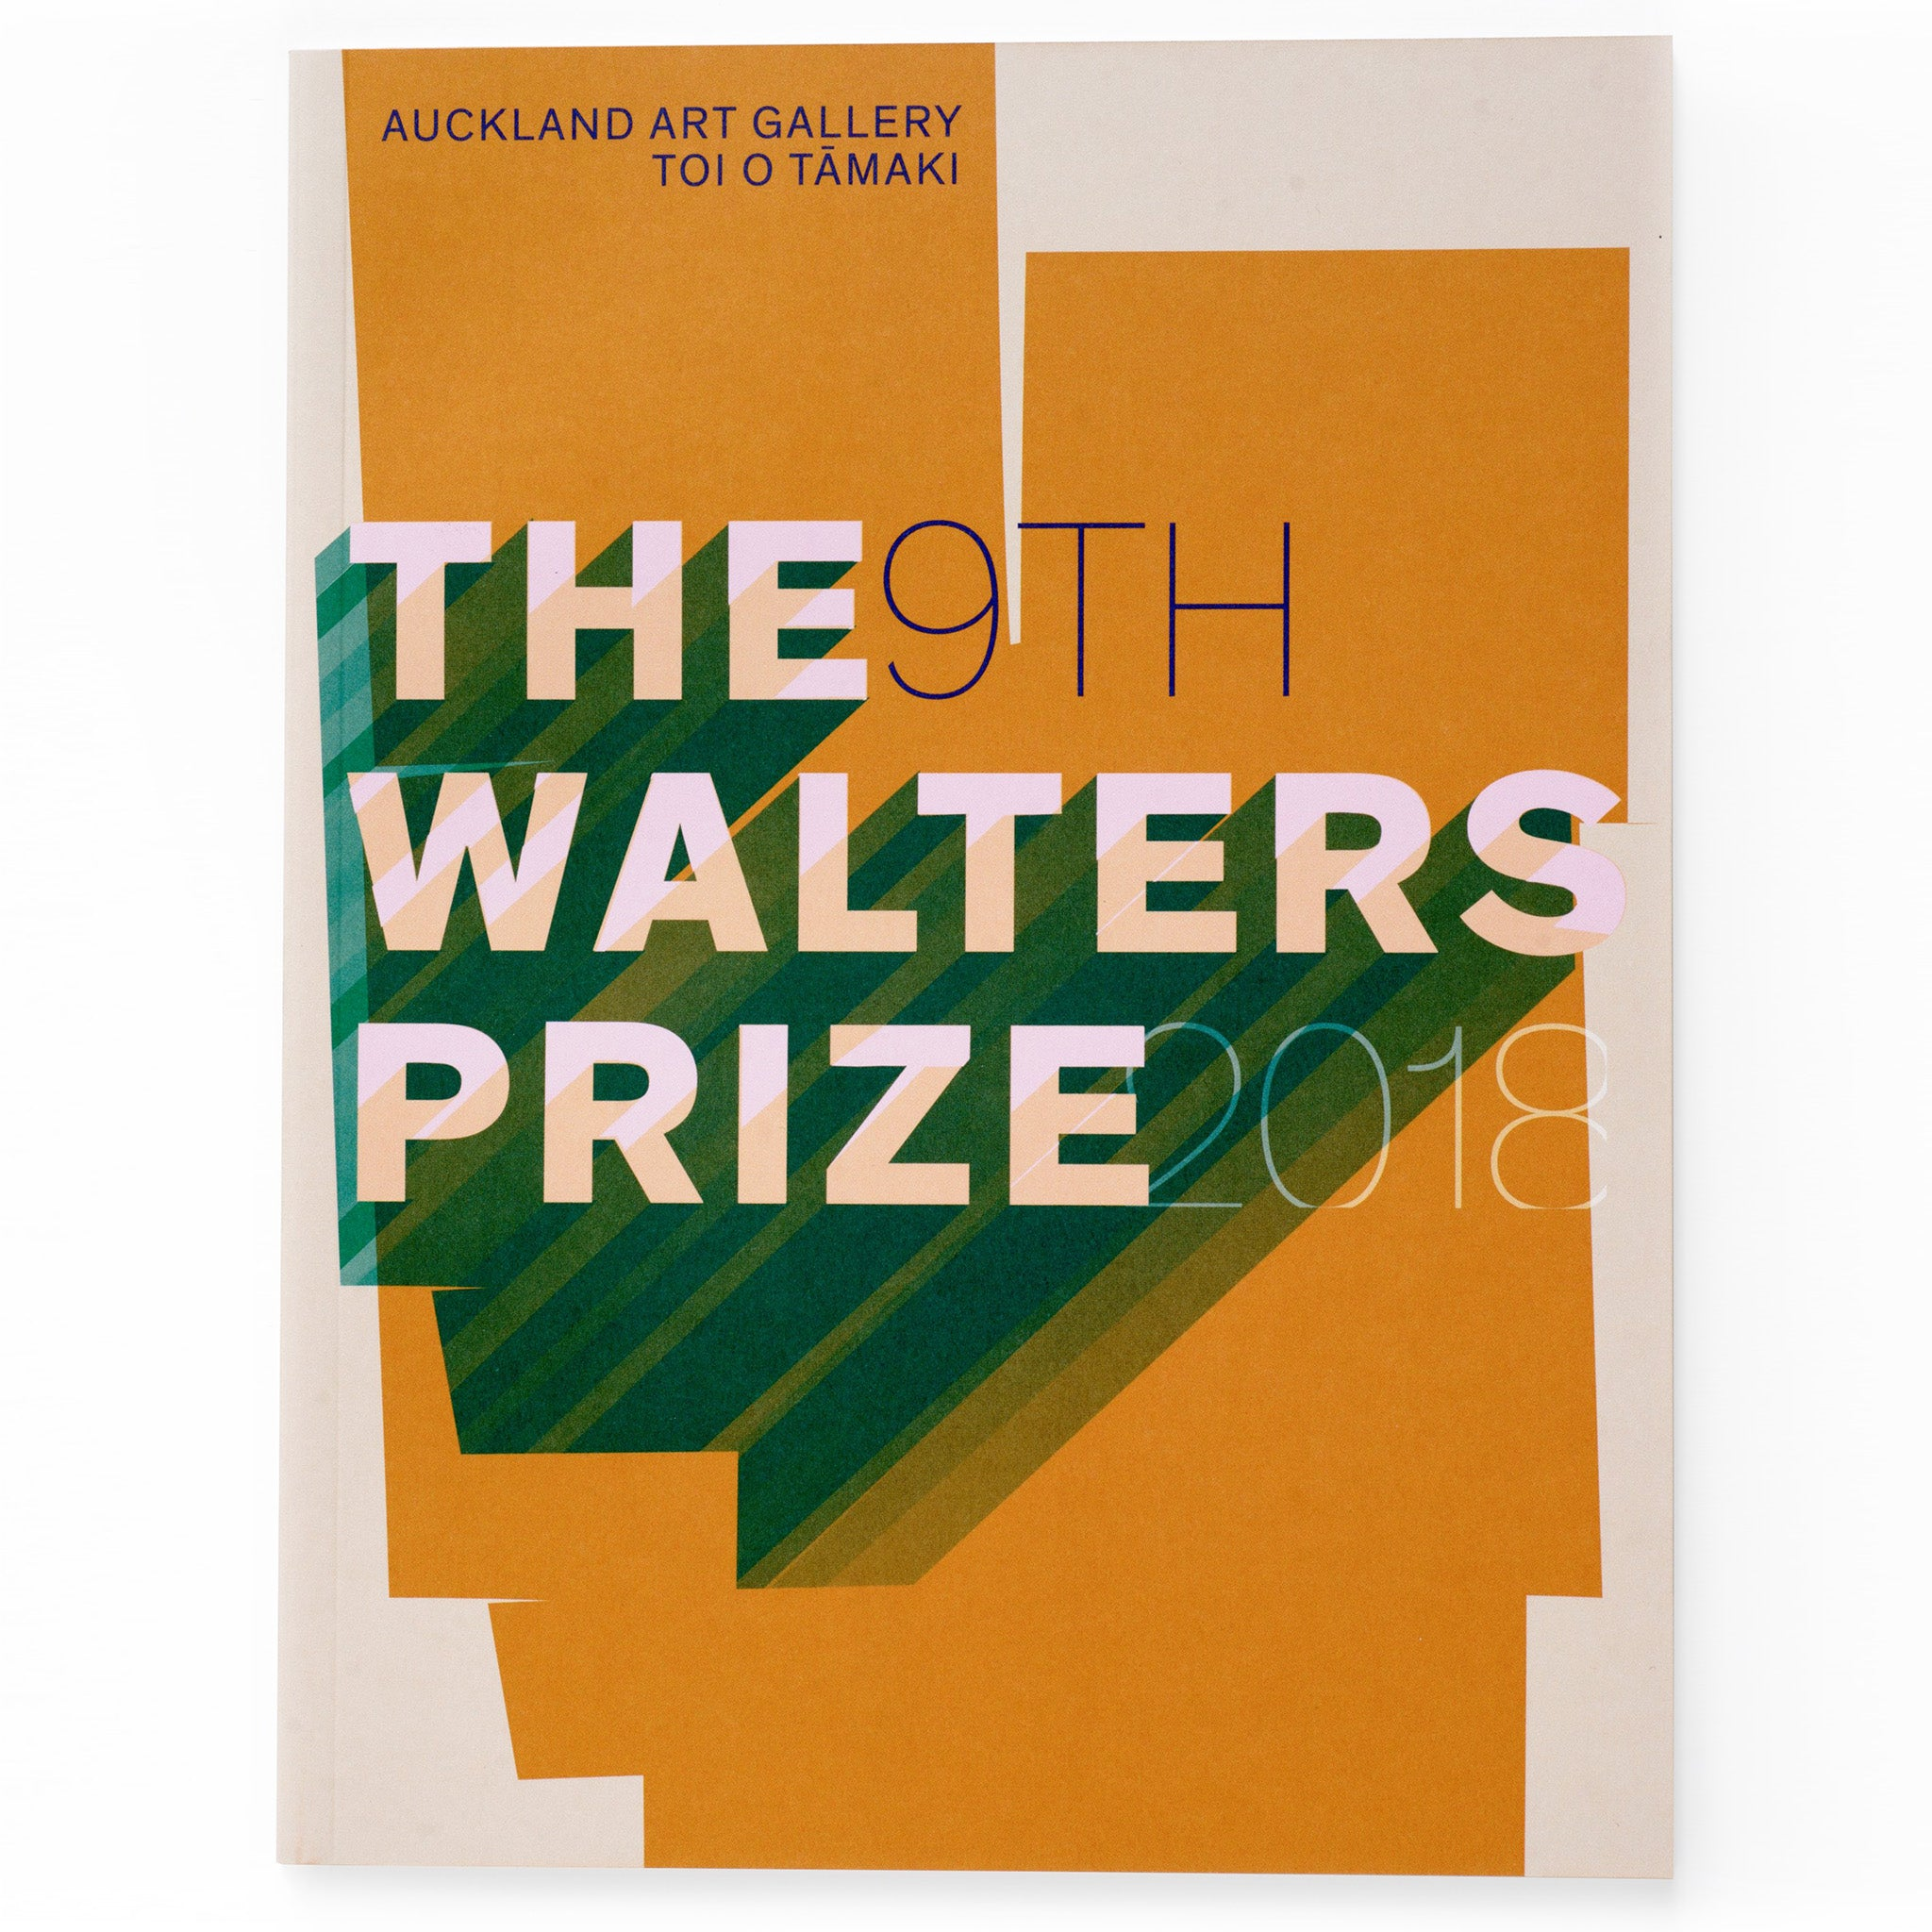 The 9th Walters Prize 2018 Image